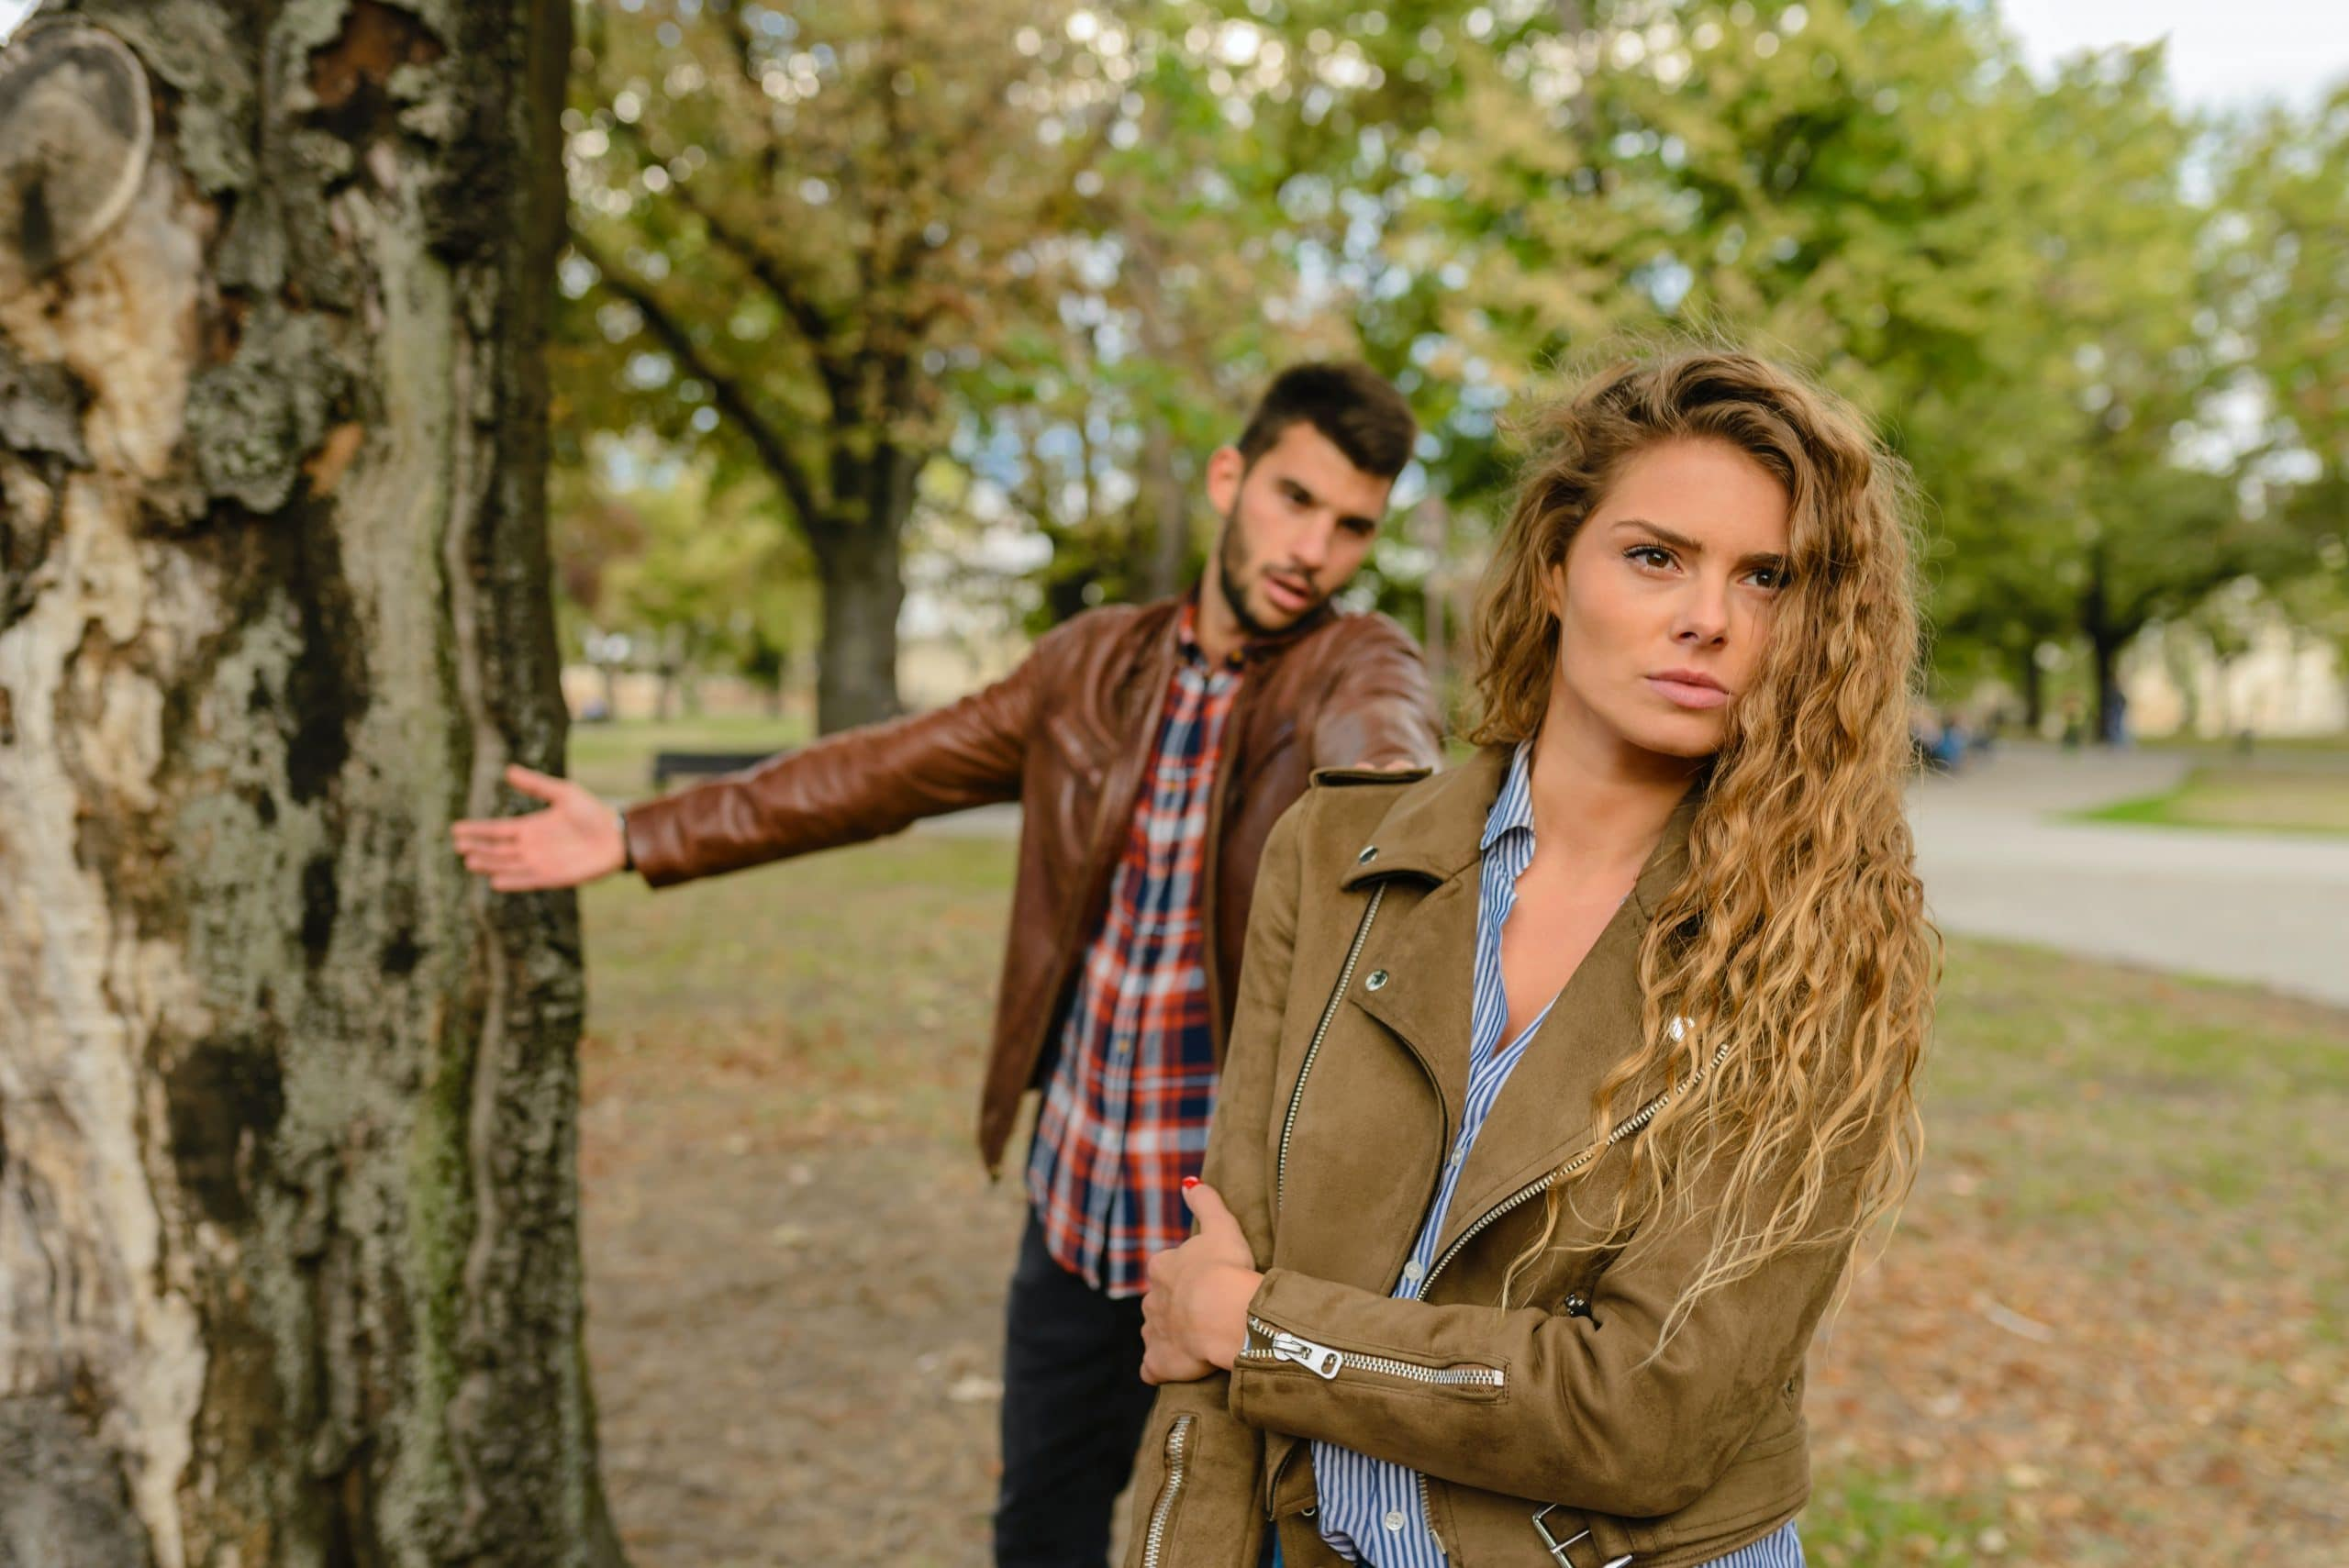 How To Break Up With Your Girlfriend - 7 Guaranteed Tips